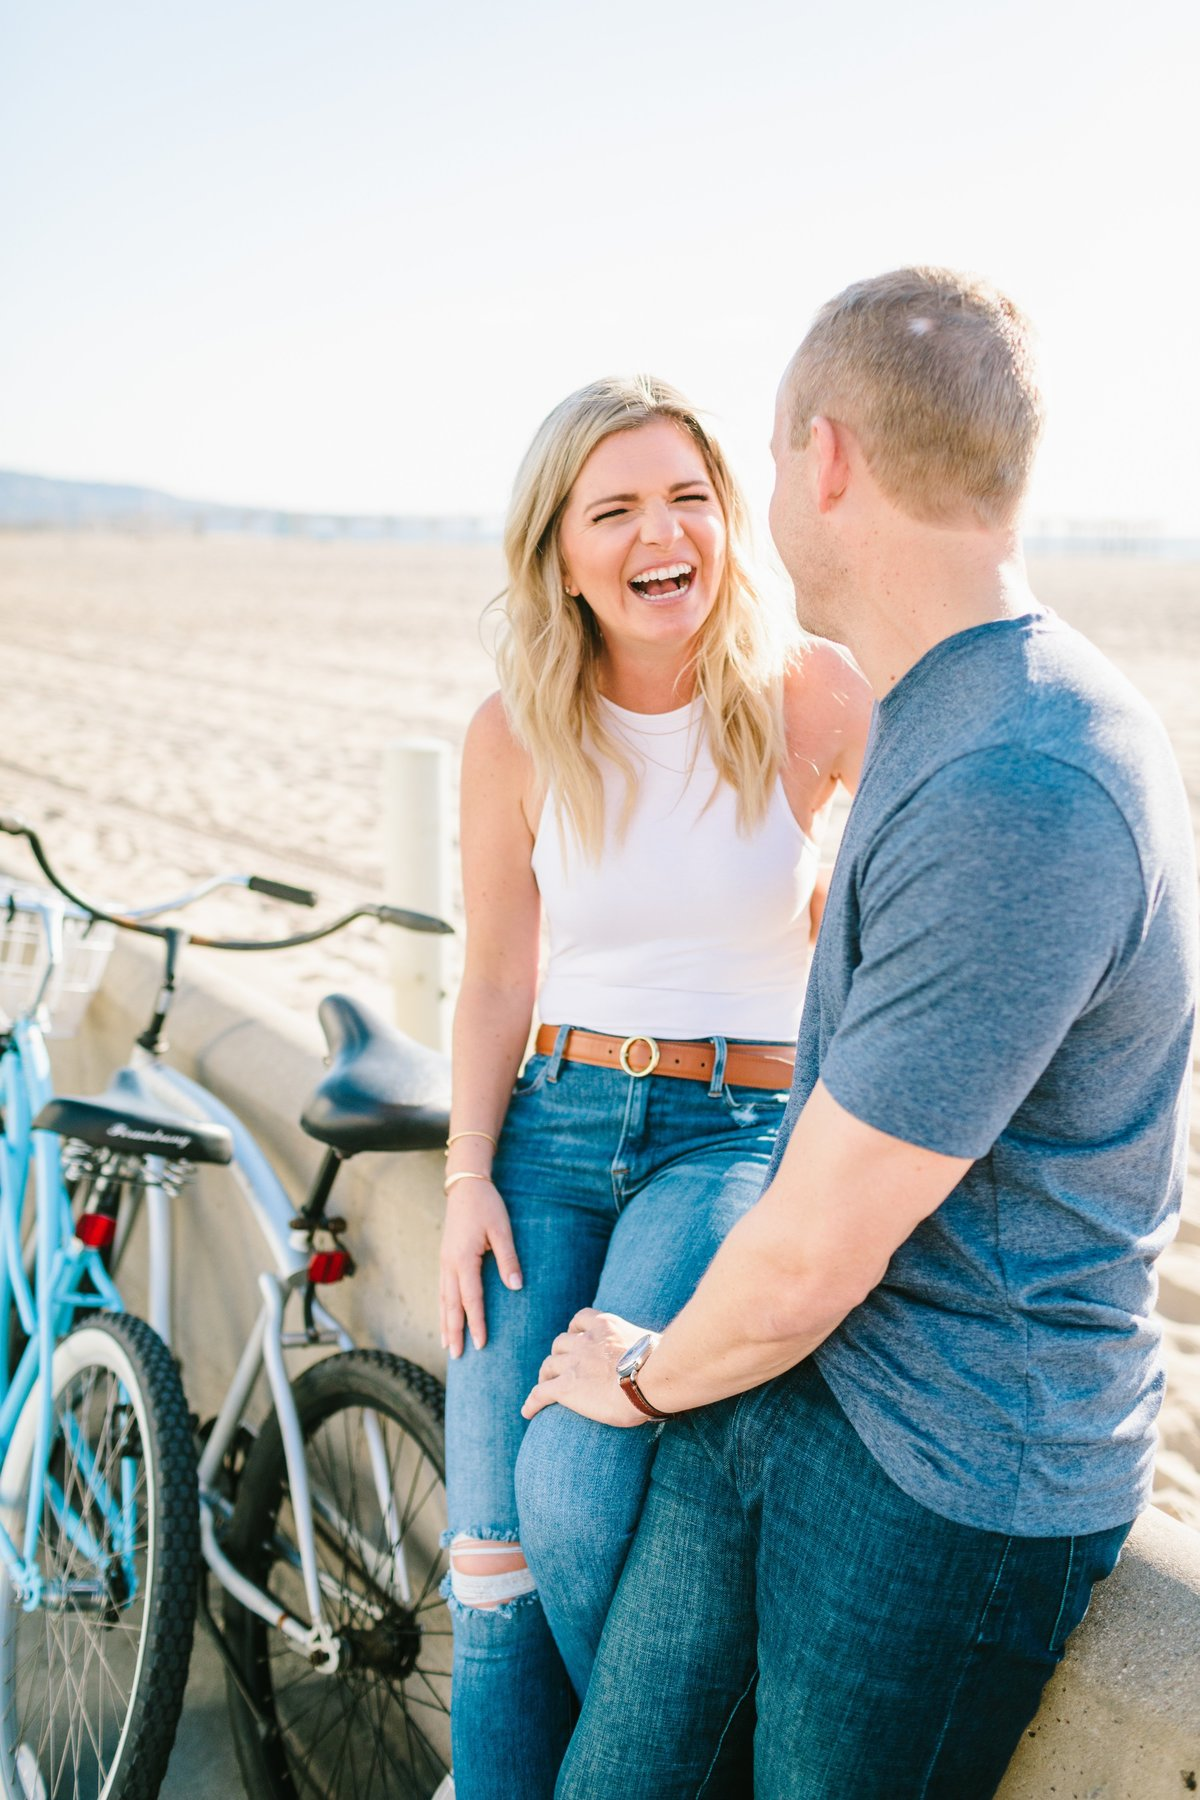 Best California Engagement Photographer-Jodee Debes Photography-234